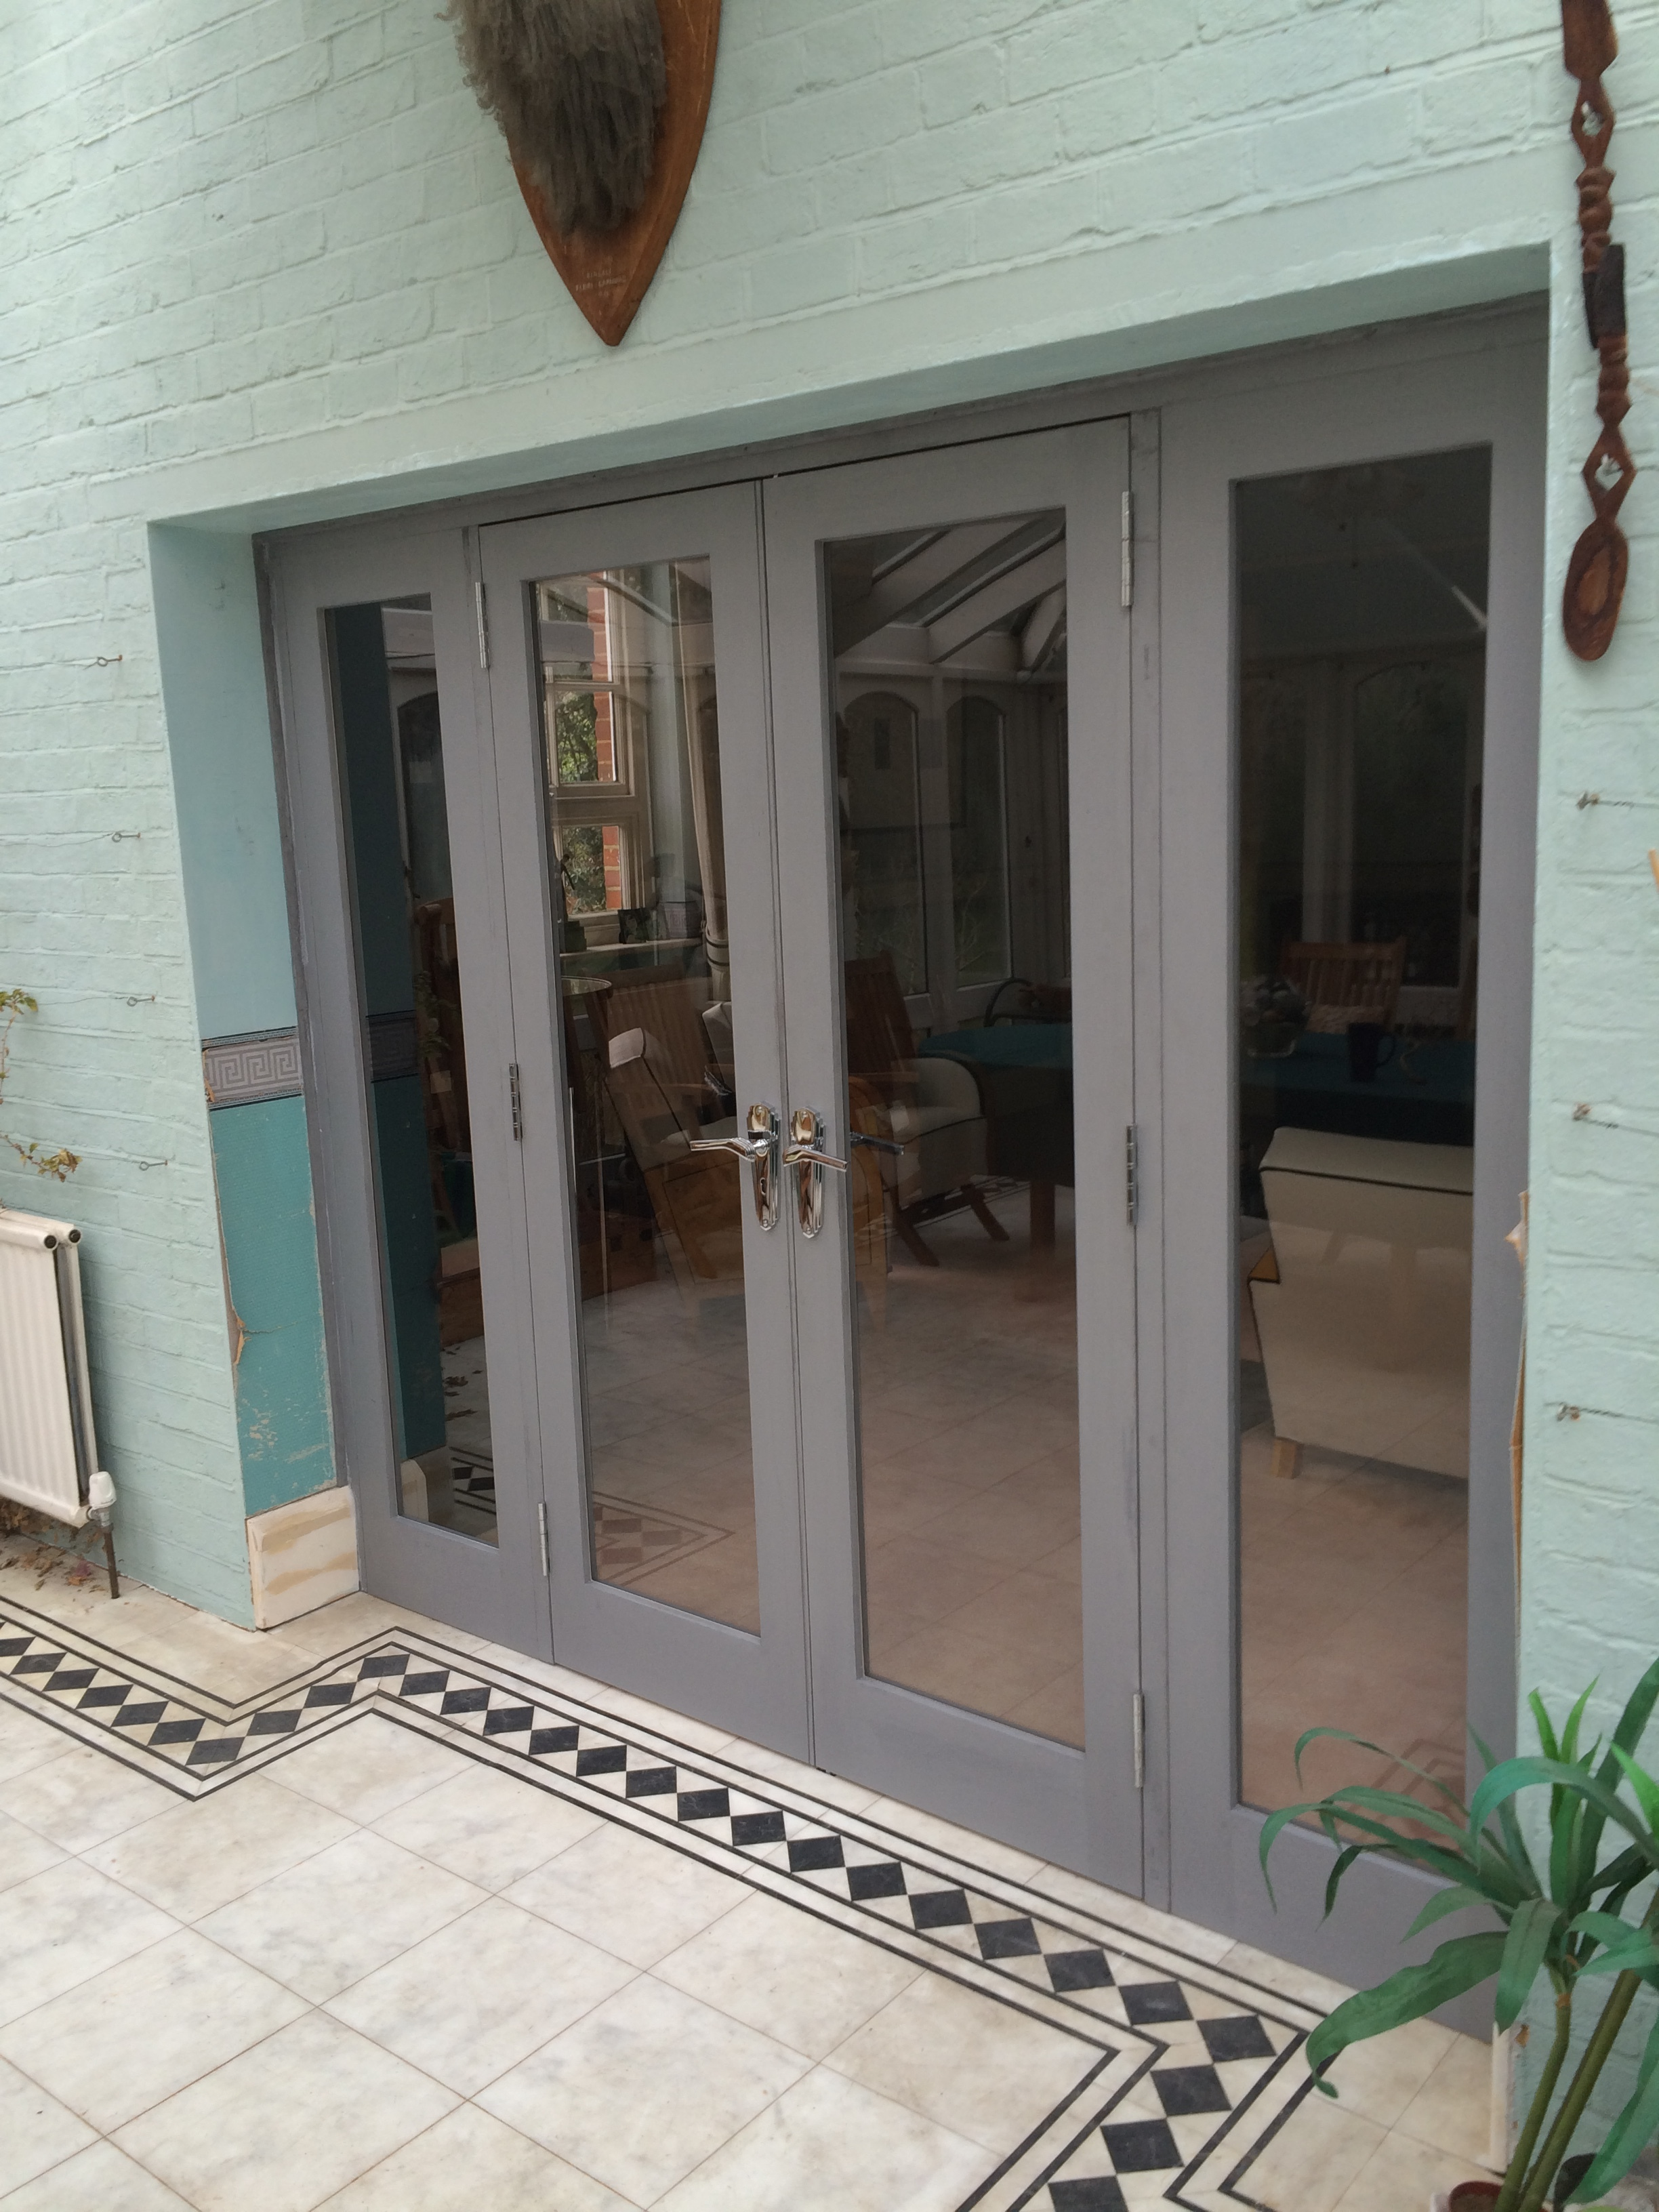 - These interior french doors separate the living room from a conservatory. The exterior (seen) is simple in form, whilst the interior has art deco detailing which complements the style of the room.